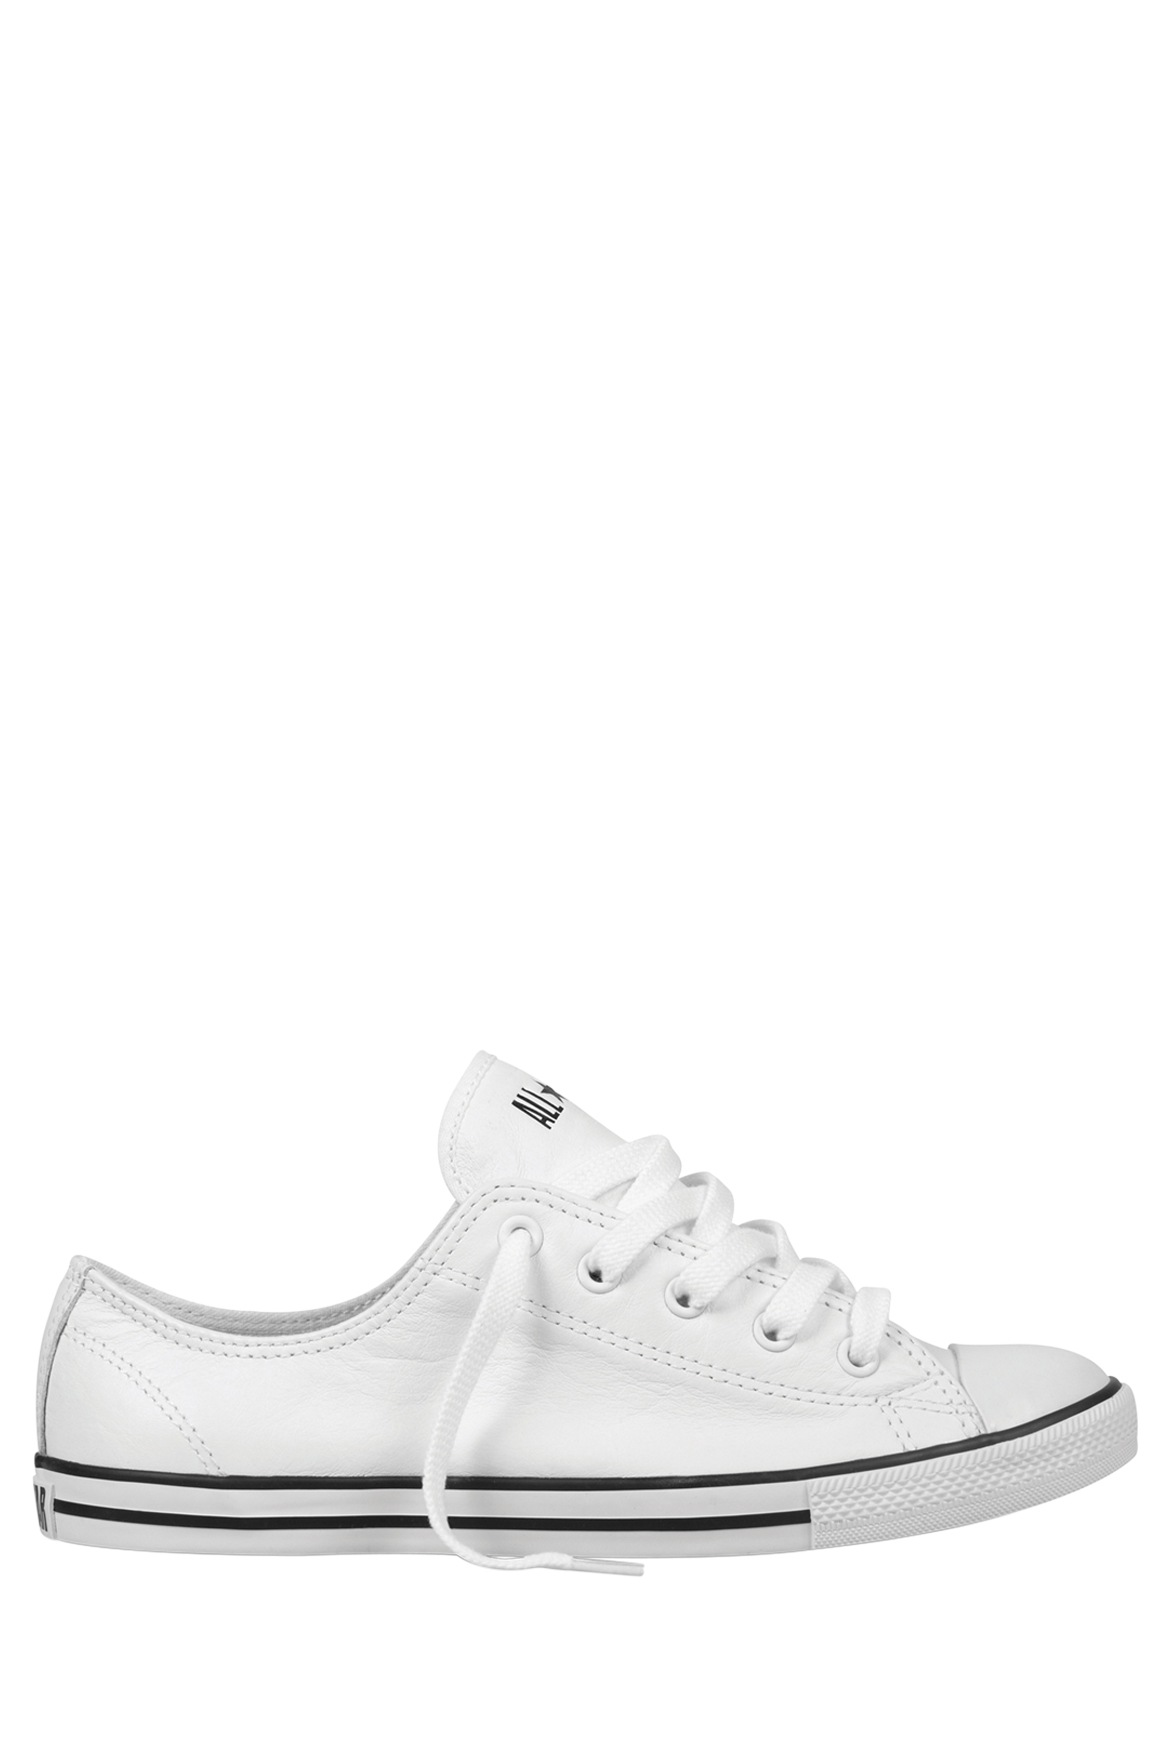 Converse Chucks 537108c Chuck Taylor All Star Dainty OX WHITE BIANCO MIS. 36 41